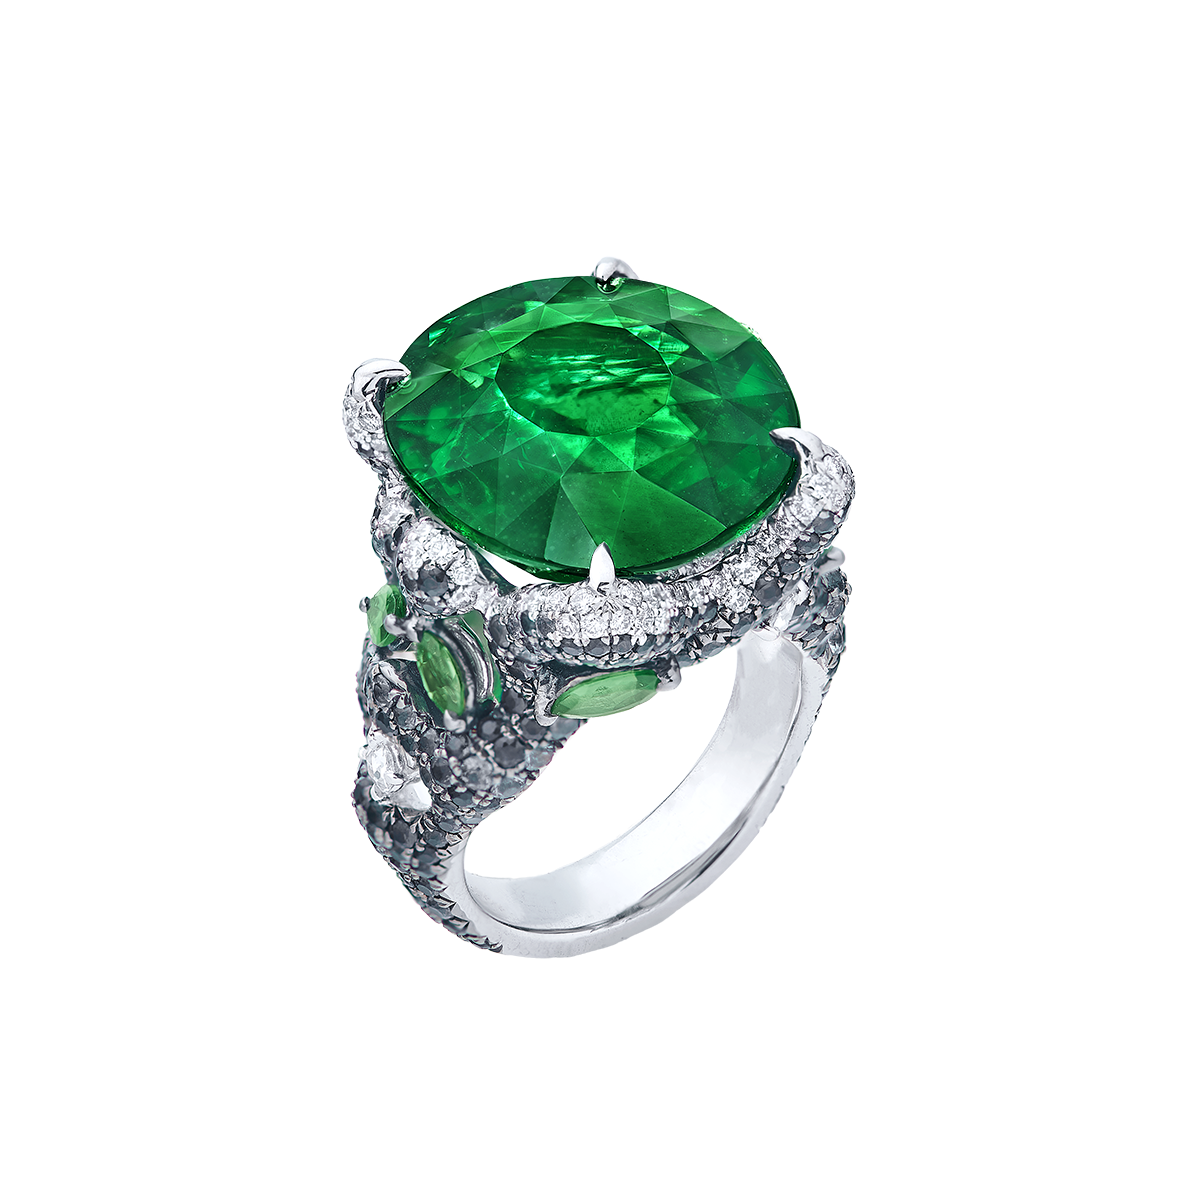 20.43克拉 艷彩沙弗萊鑽戒